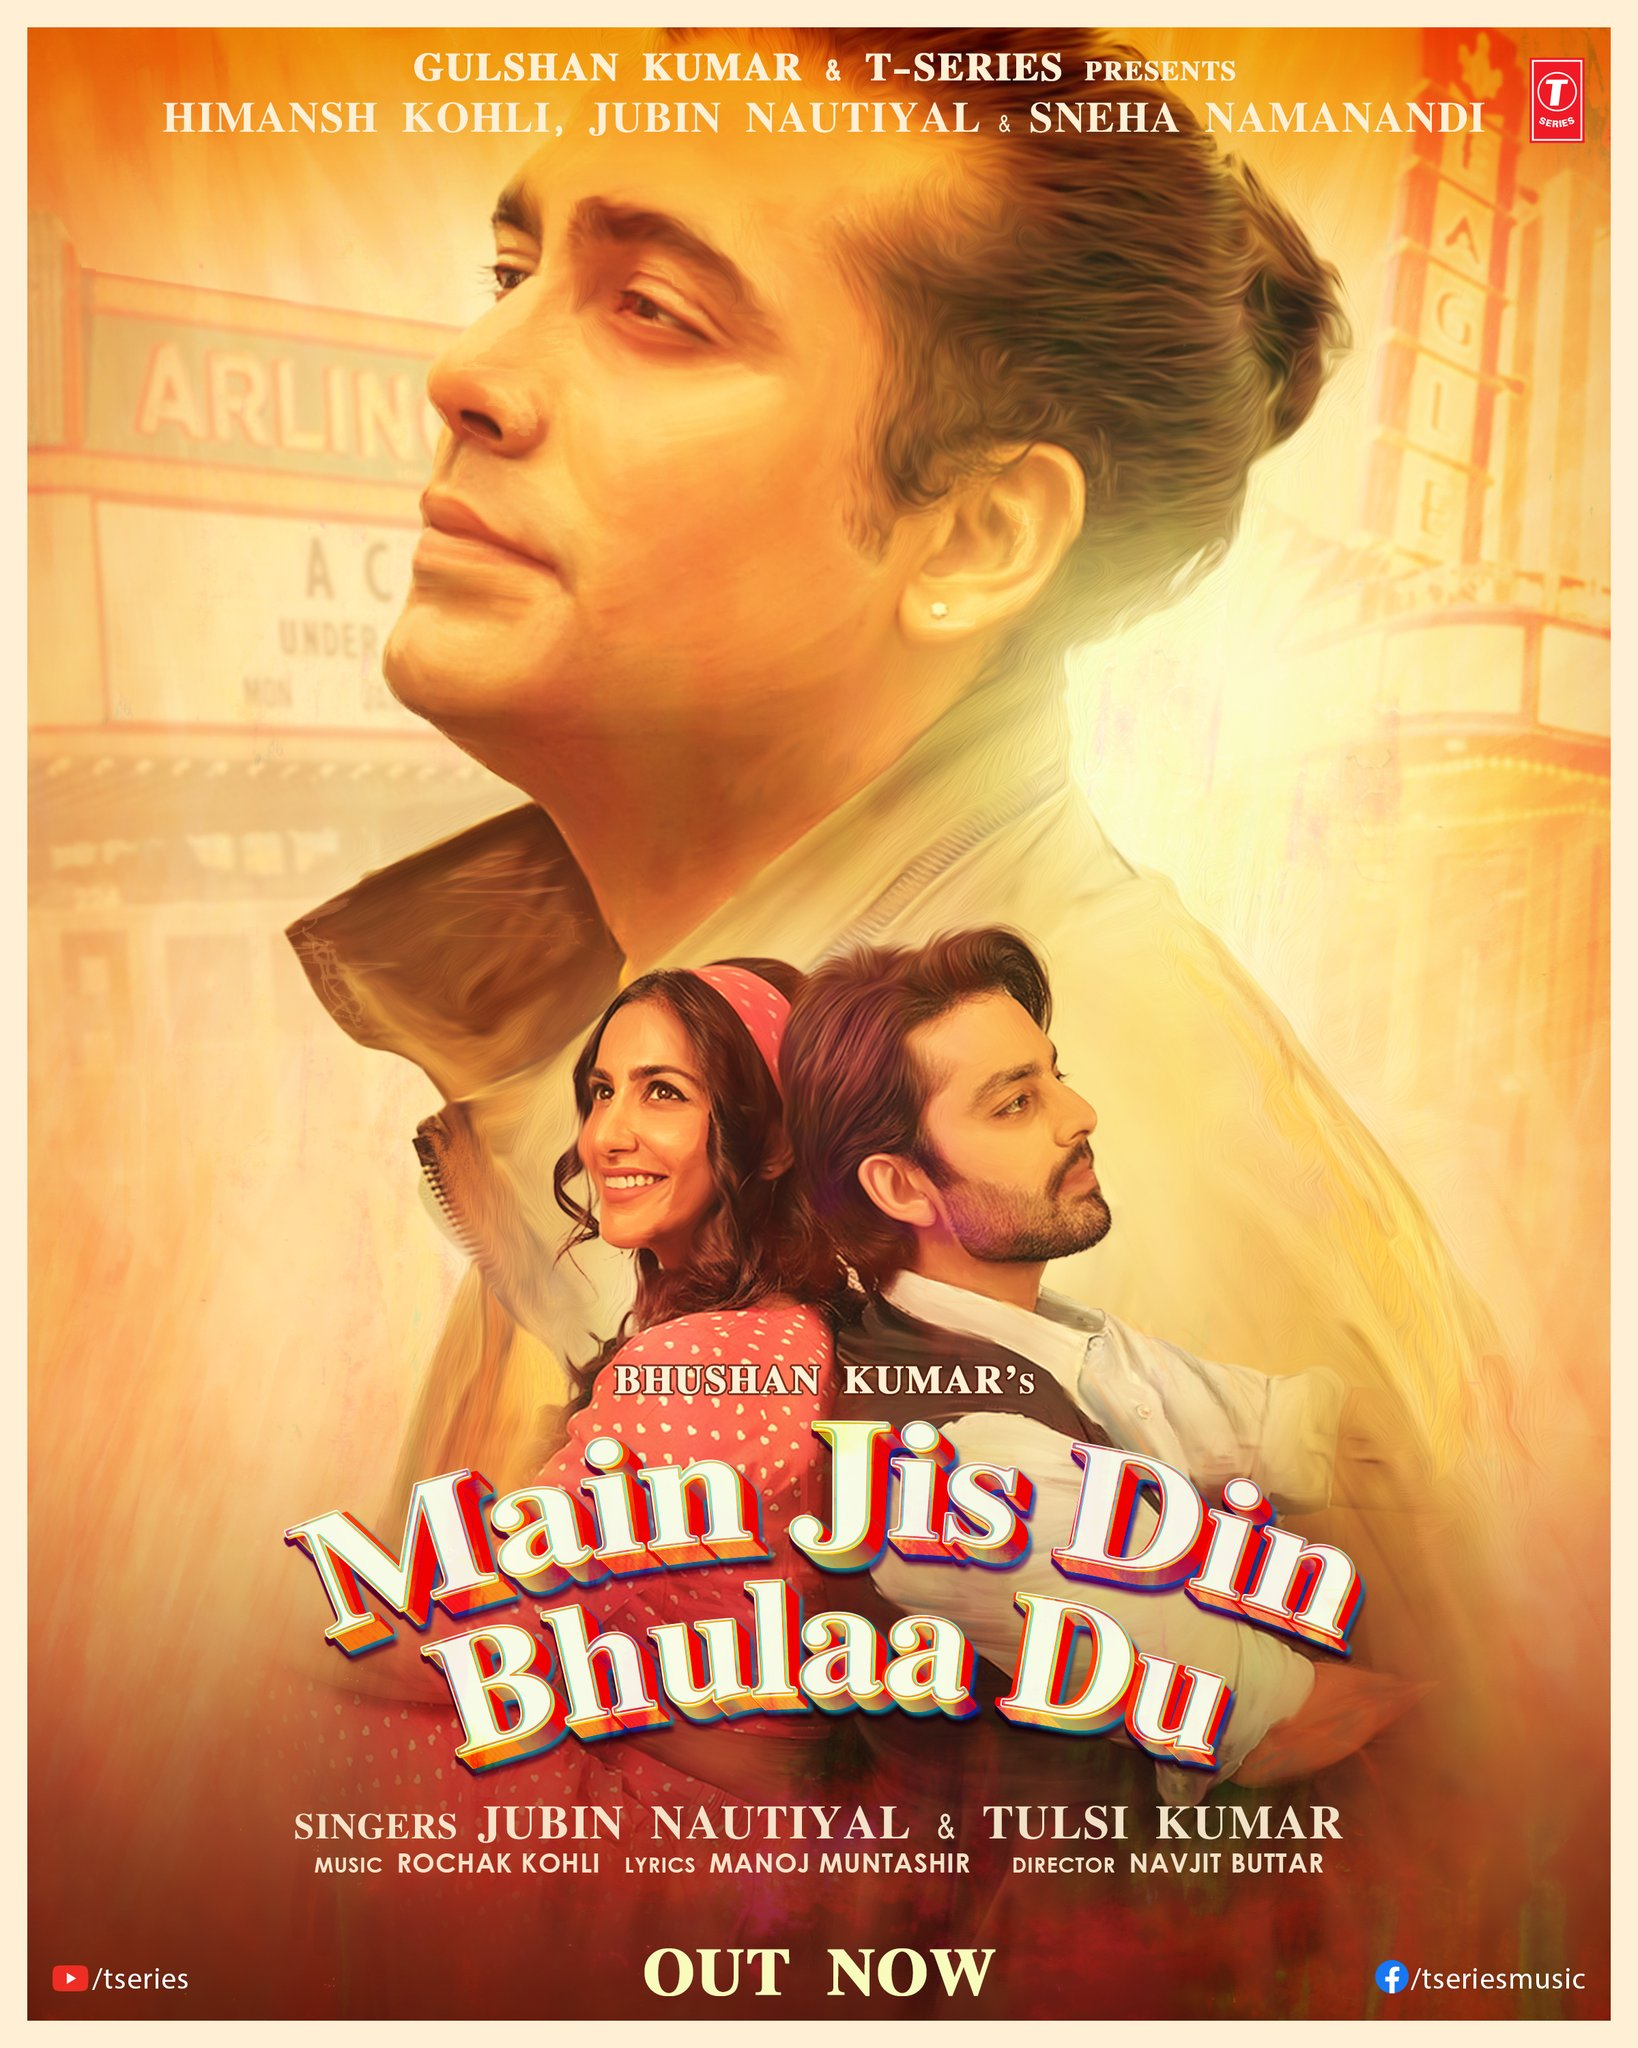 Main Jis Din Bhulaa Du By Jubin Nautiyal & Tulsi Kumar Official Music Video 1080p HDRip Download